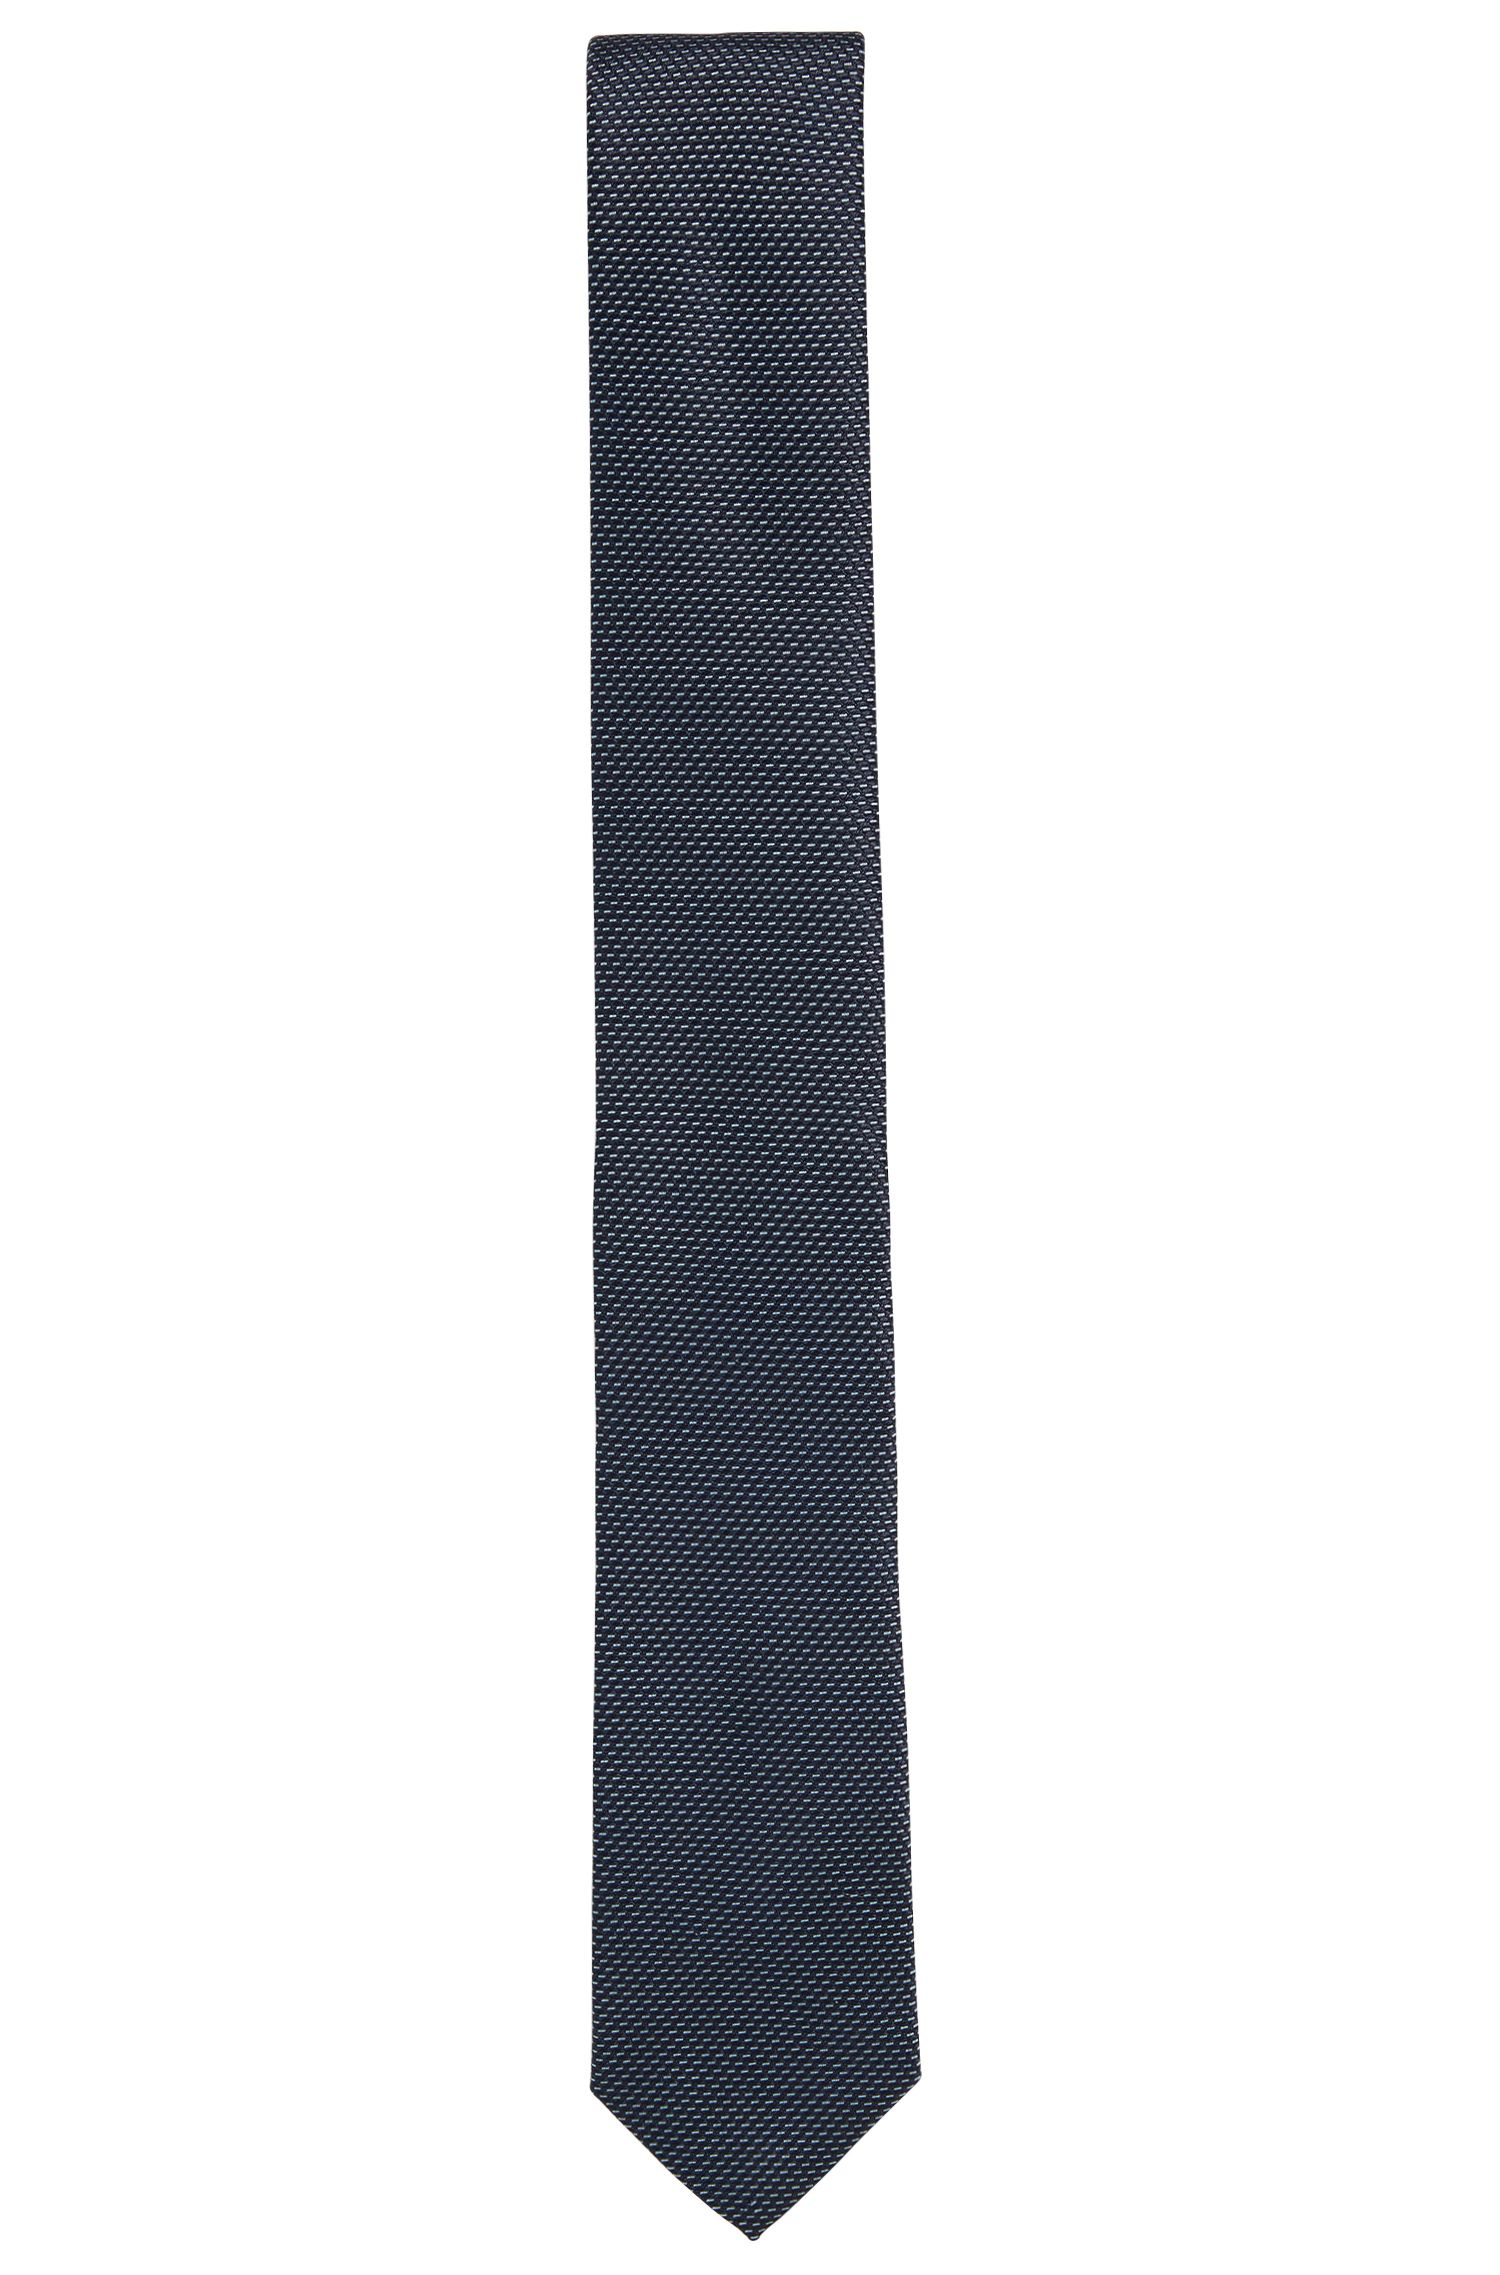 Silk tie in a two-tone micro pattern